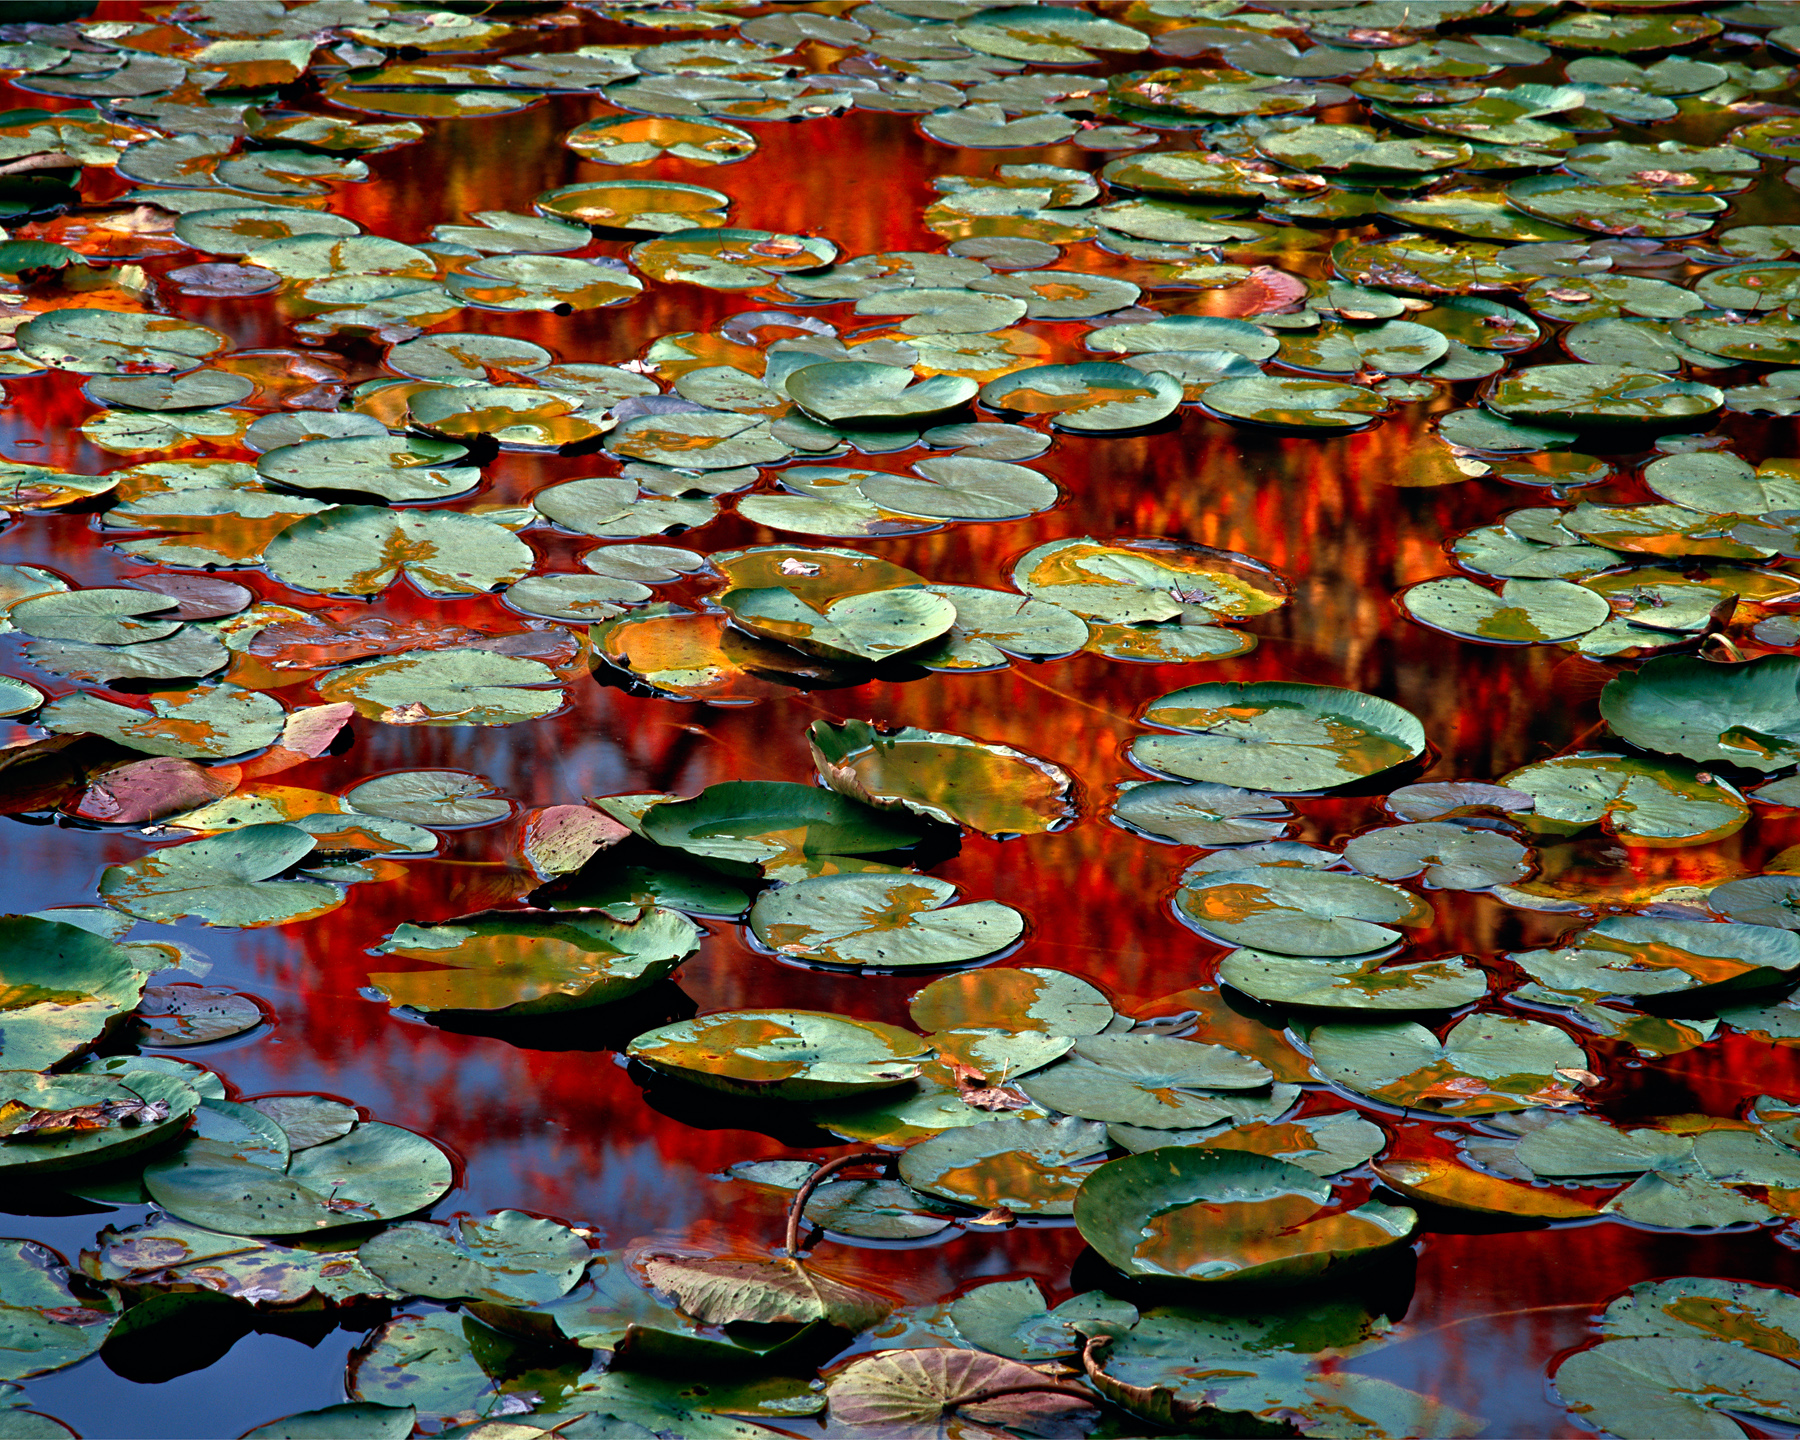 """Autumn lily pads, Beech Forest, Cape Cod"" by Scot Miller,  Archival Pigment Print"